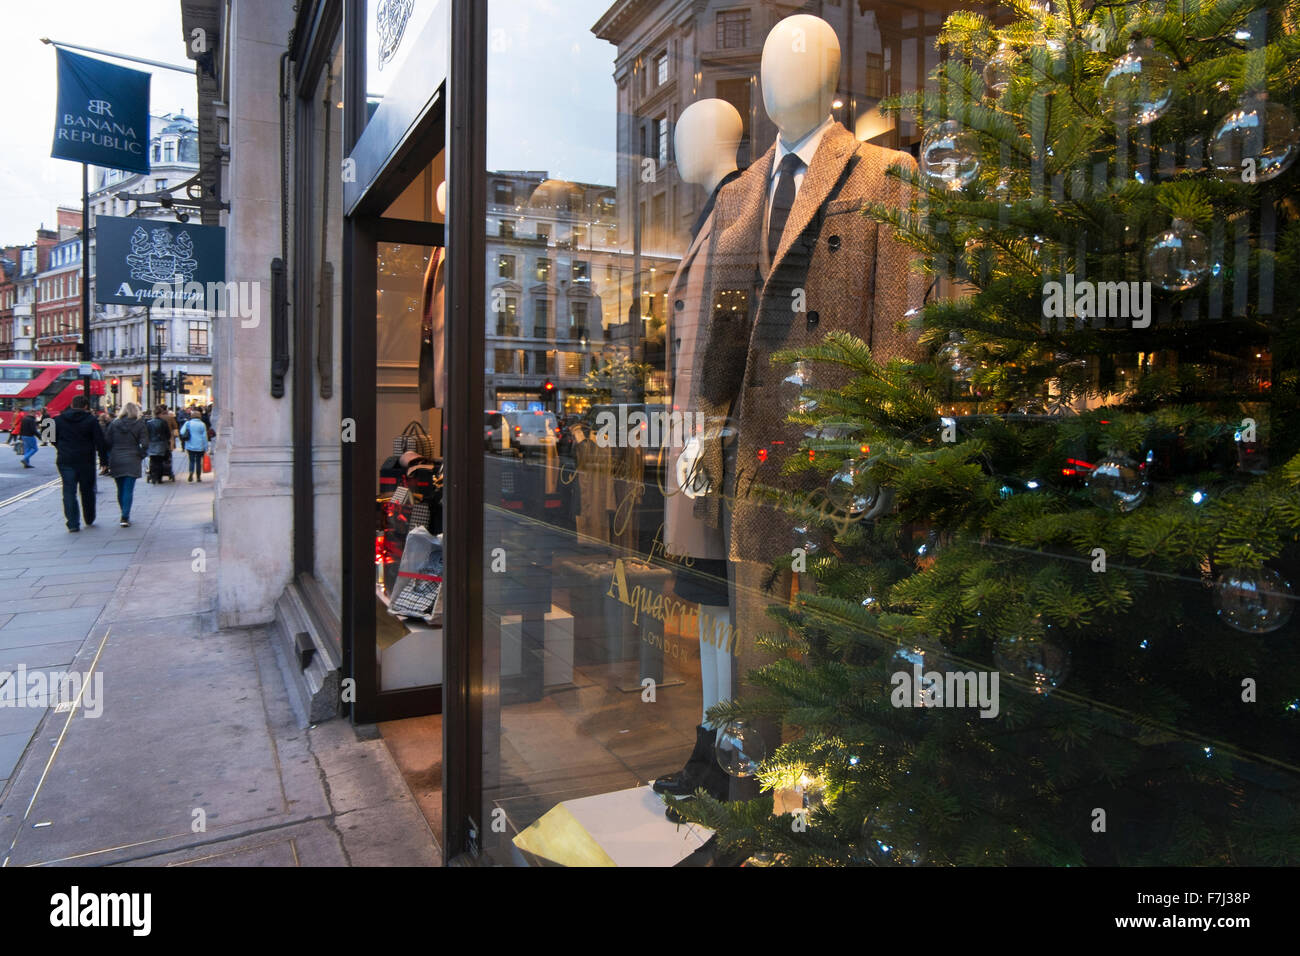 The window display of clothes shop Aquascutum in Great Marlborough Street cdf5055b37f